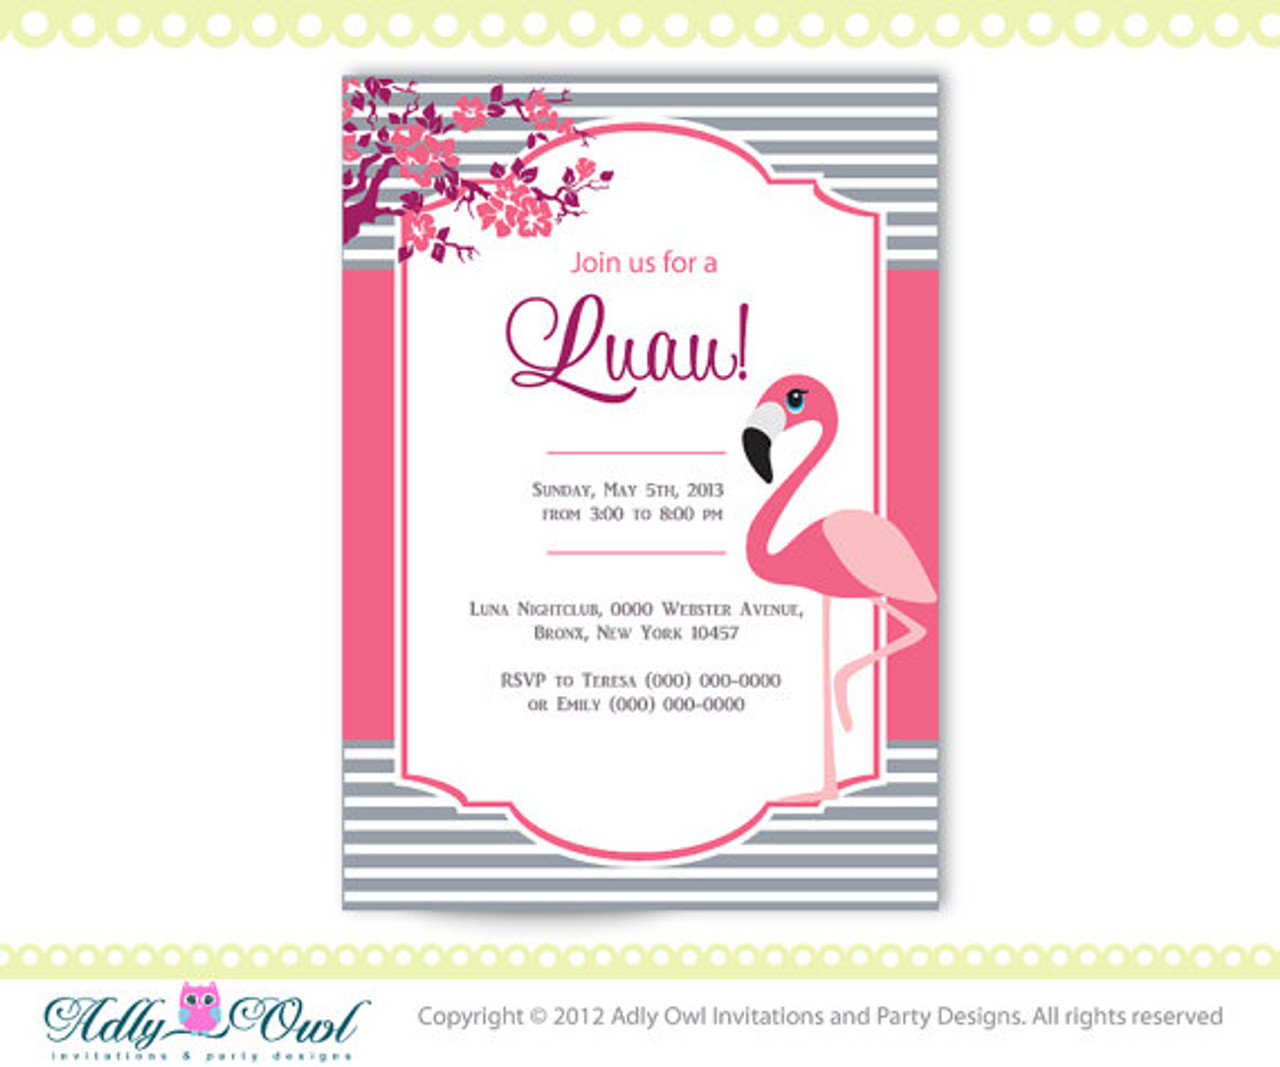 Personalized Luau Party Printable With Pink Flamingo DIY Invitation For A Partybaby Shower ONLY Digital File